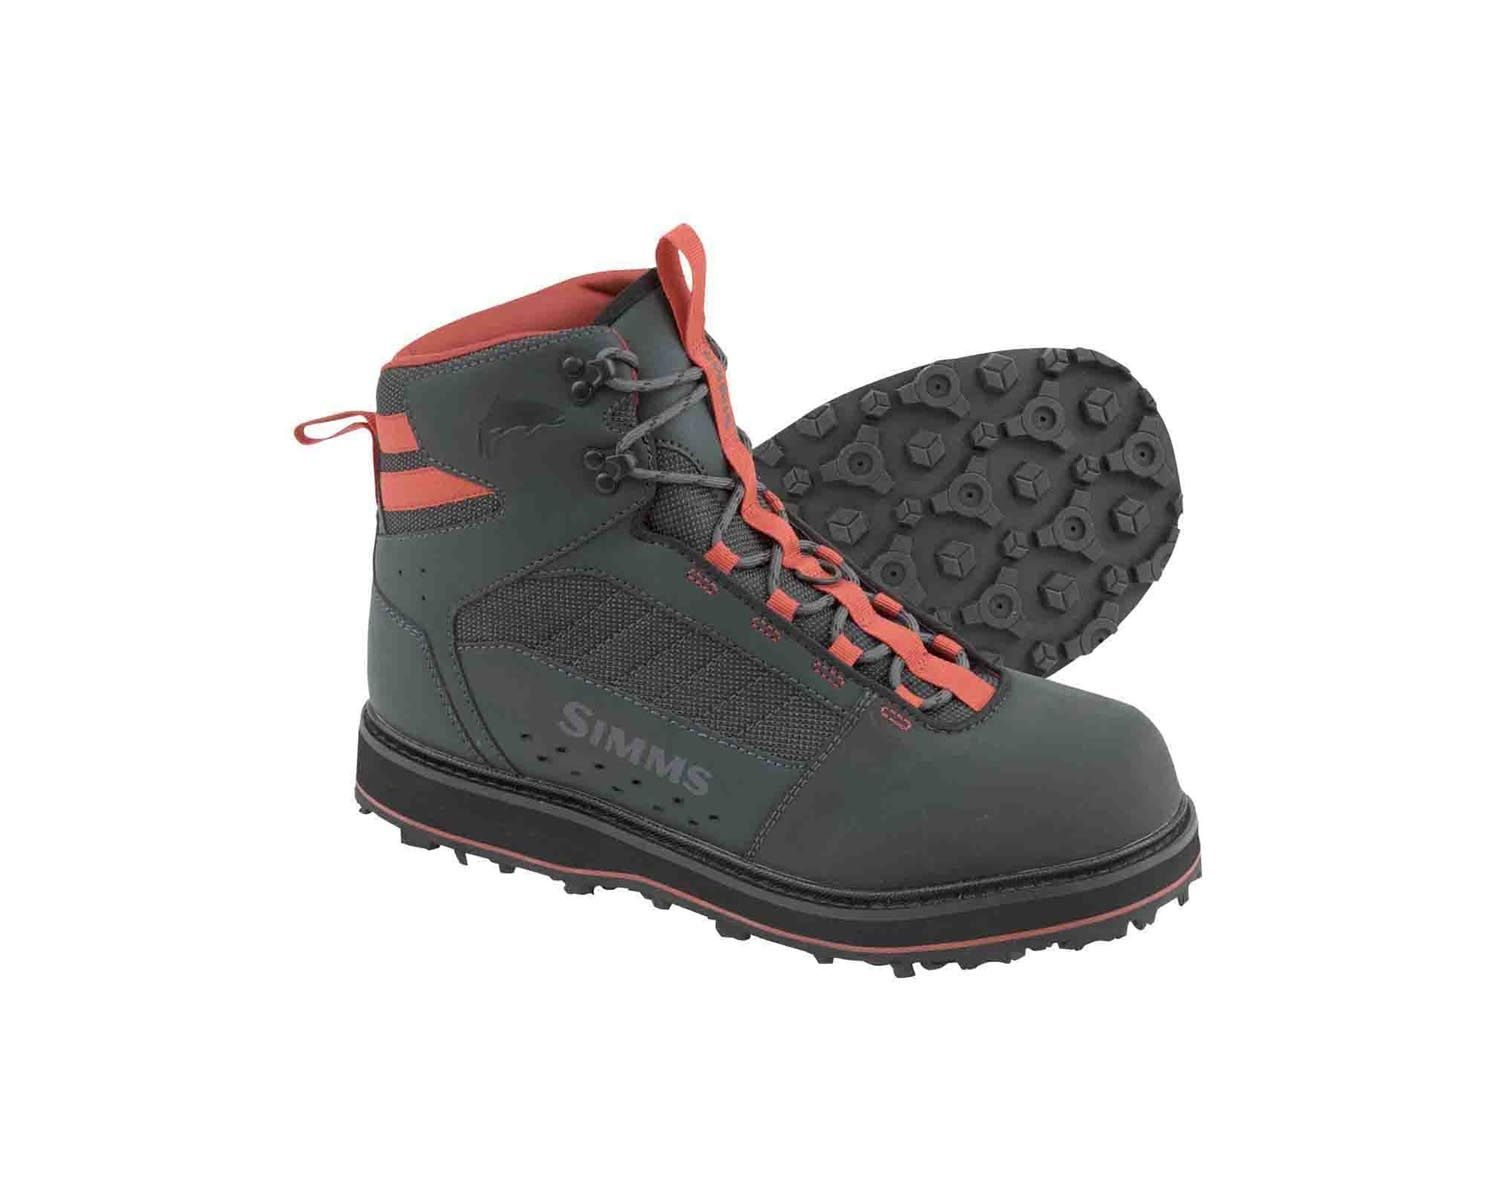 SIMMS M'S TRIBUTARY BOOT